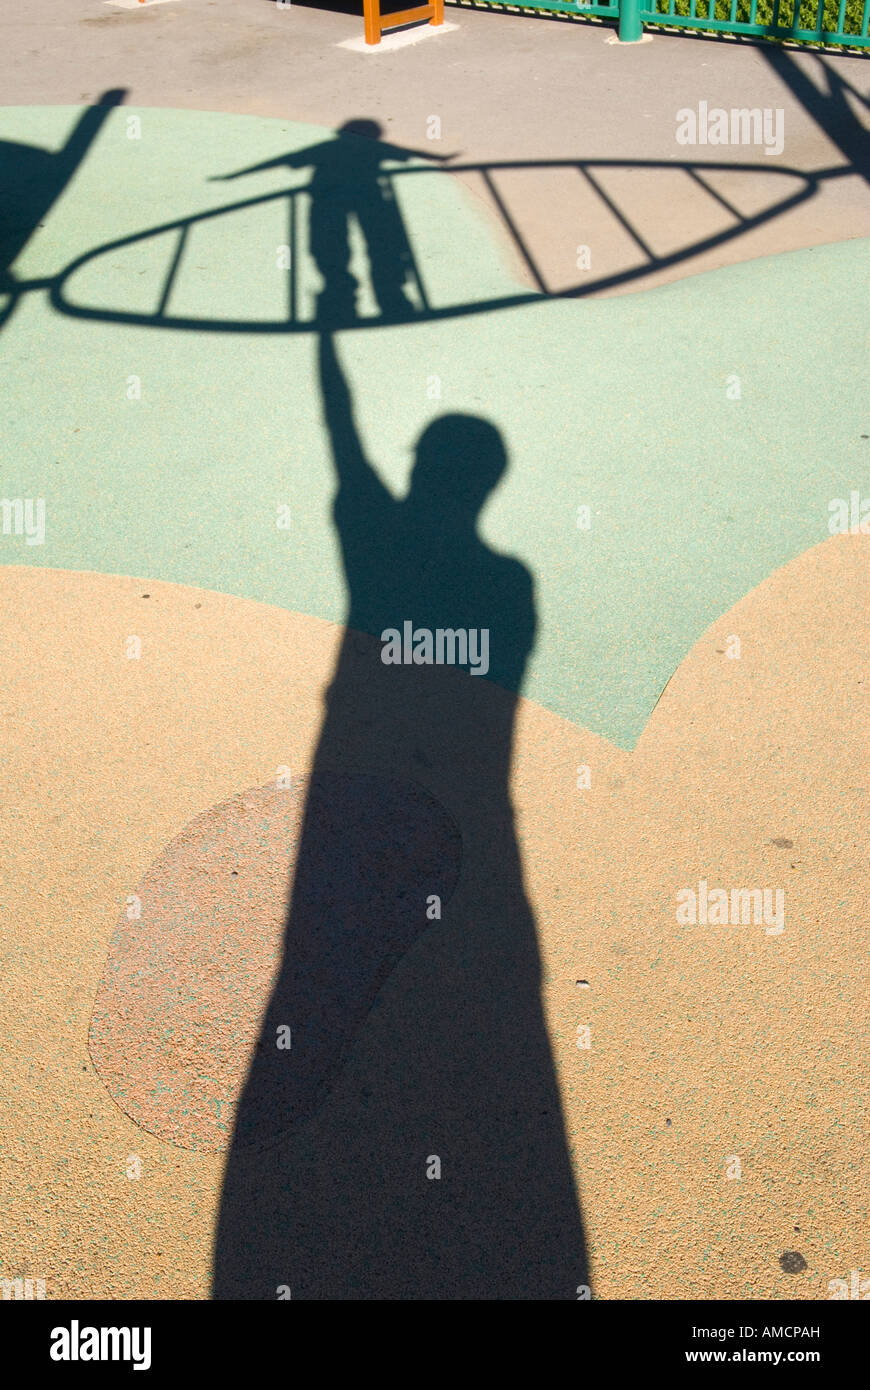 shadows of small child on climbing frame towering over shadow of adult on playground floor - Stock Image